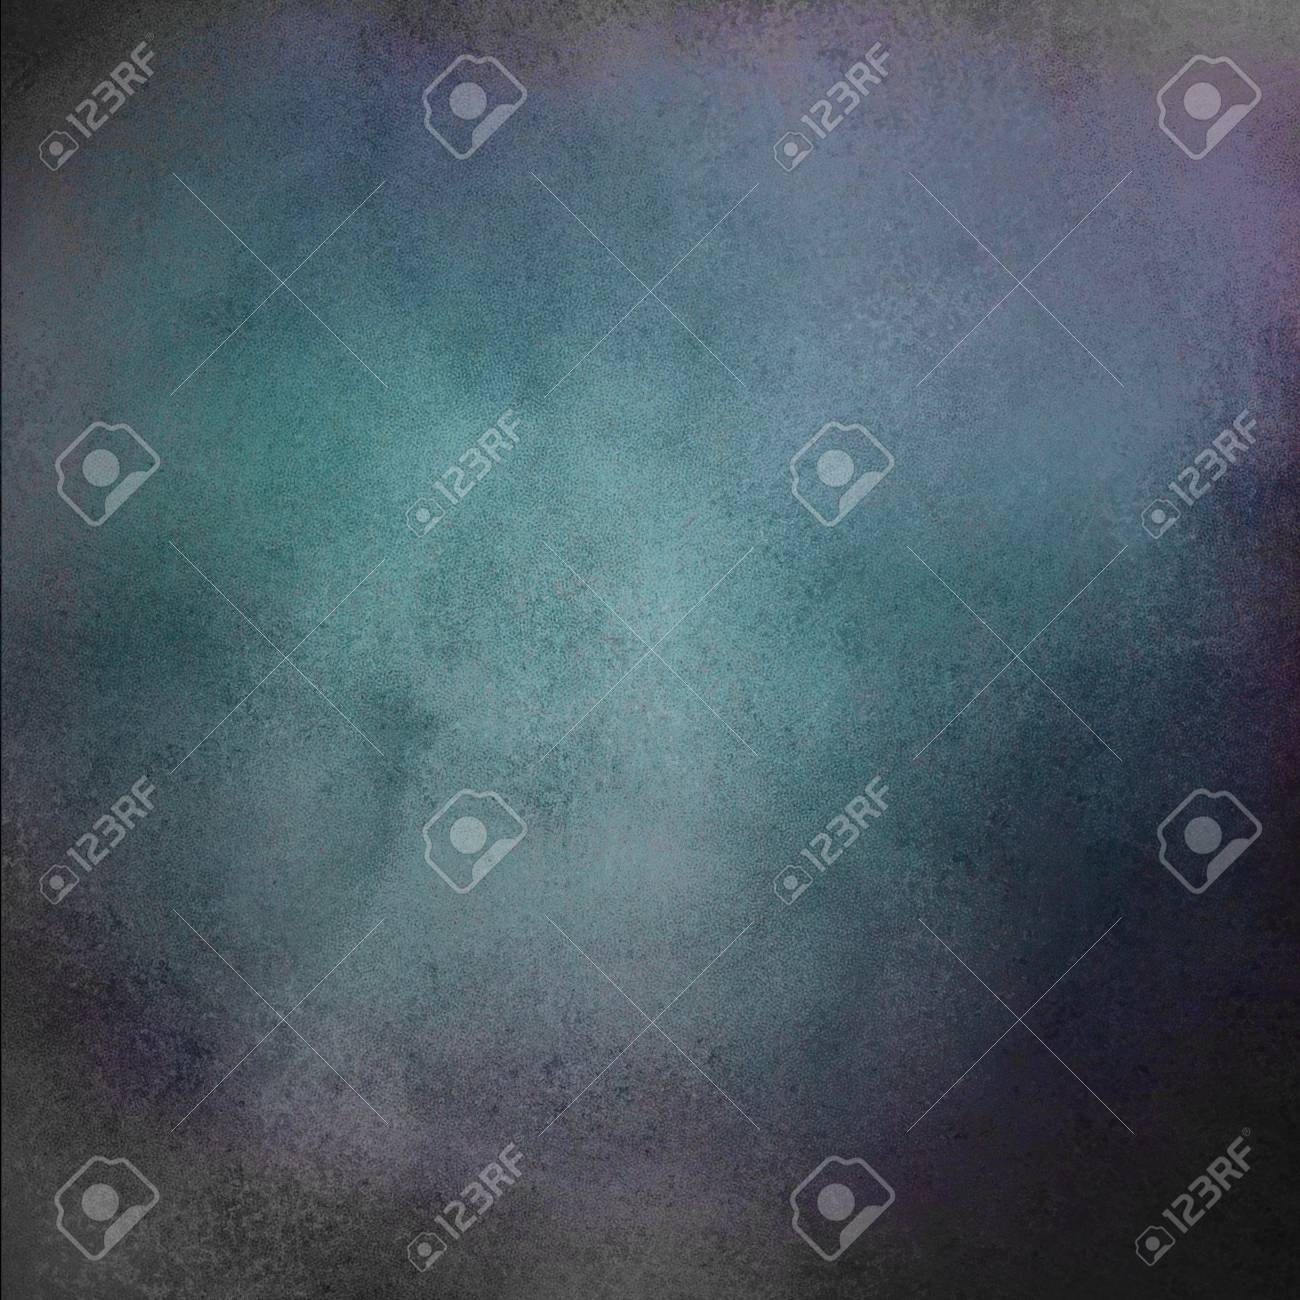 abstract blue background or blue paper with black edges and vintage grunge background texture design for ads or website template backdrop, blue sign Stock Photo - 18083792